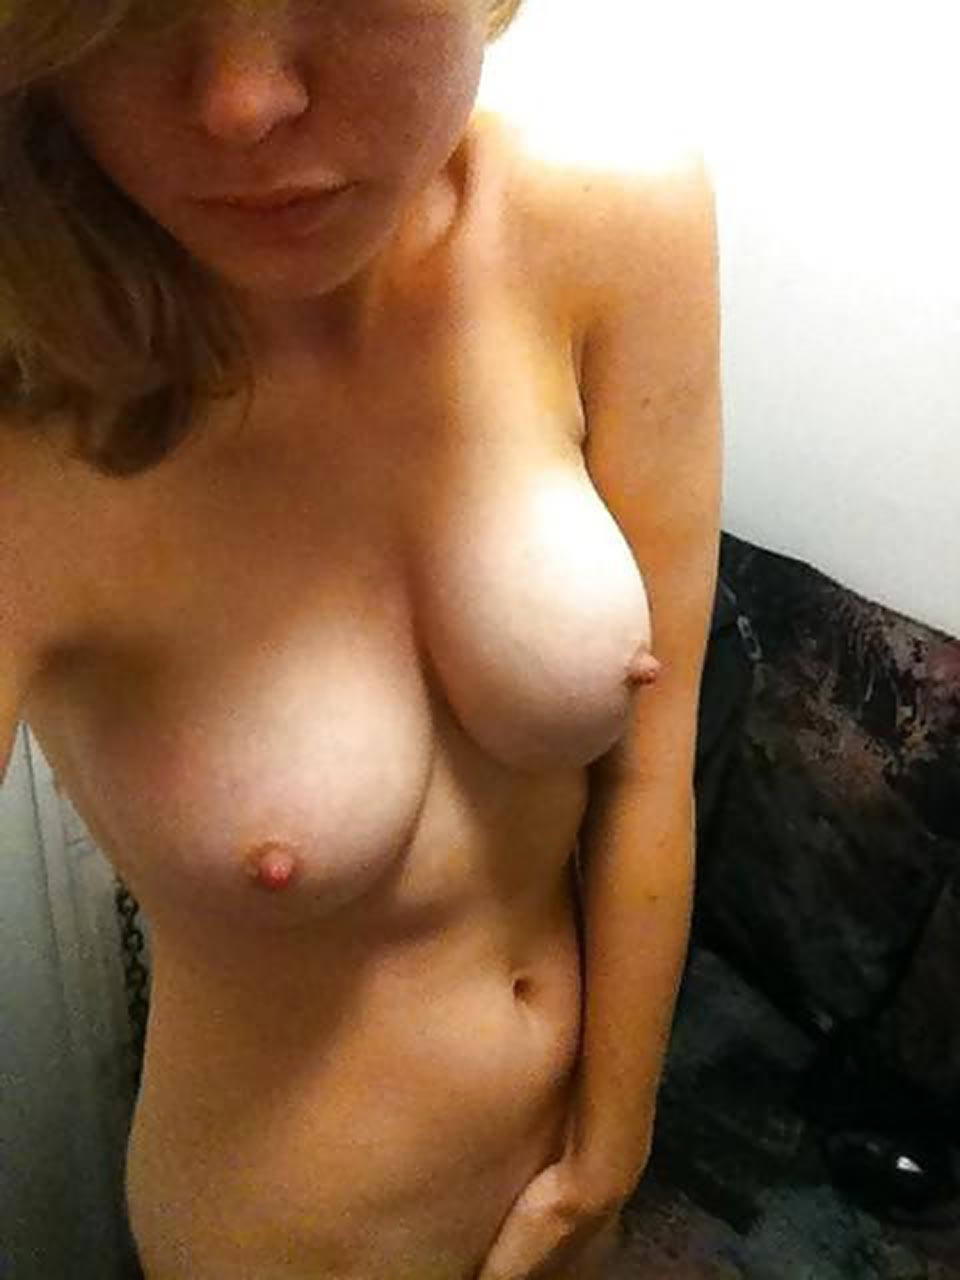 Can not nude selfies actress think, that you